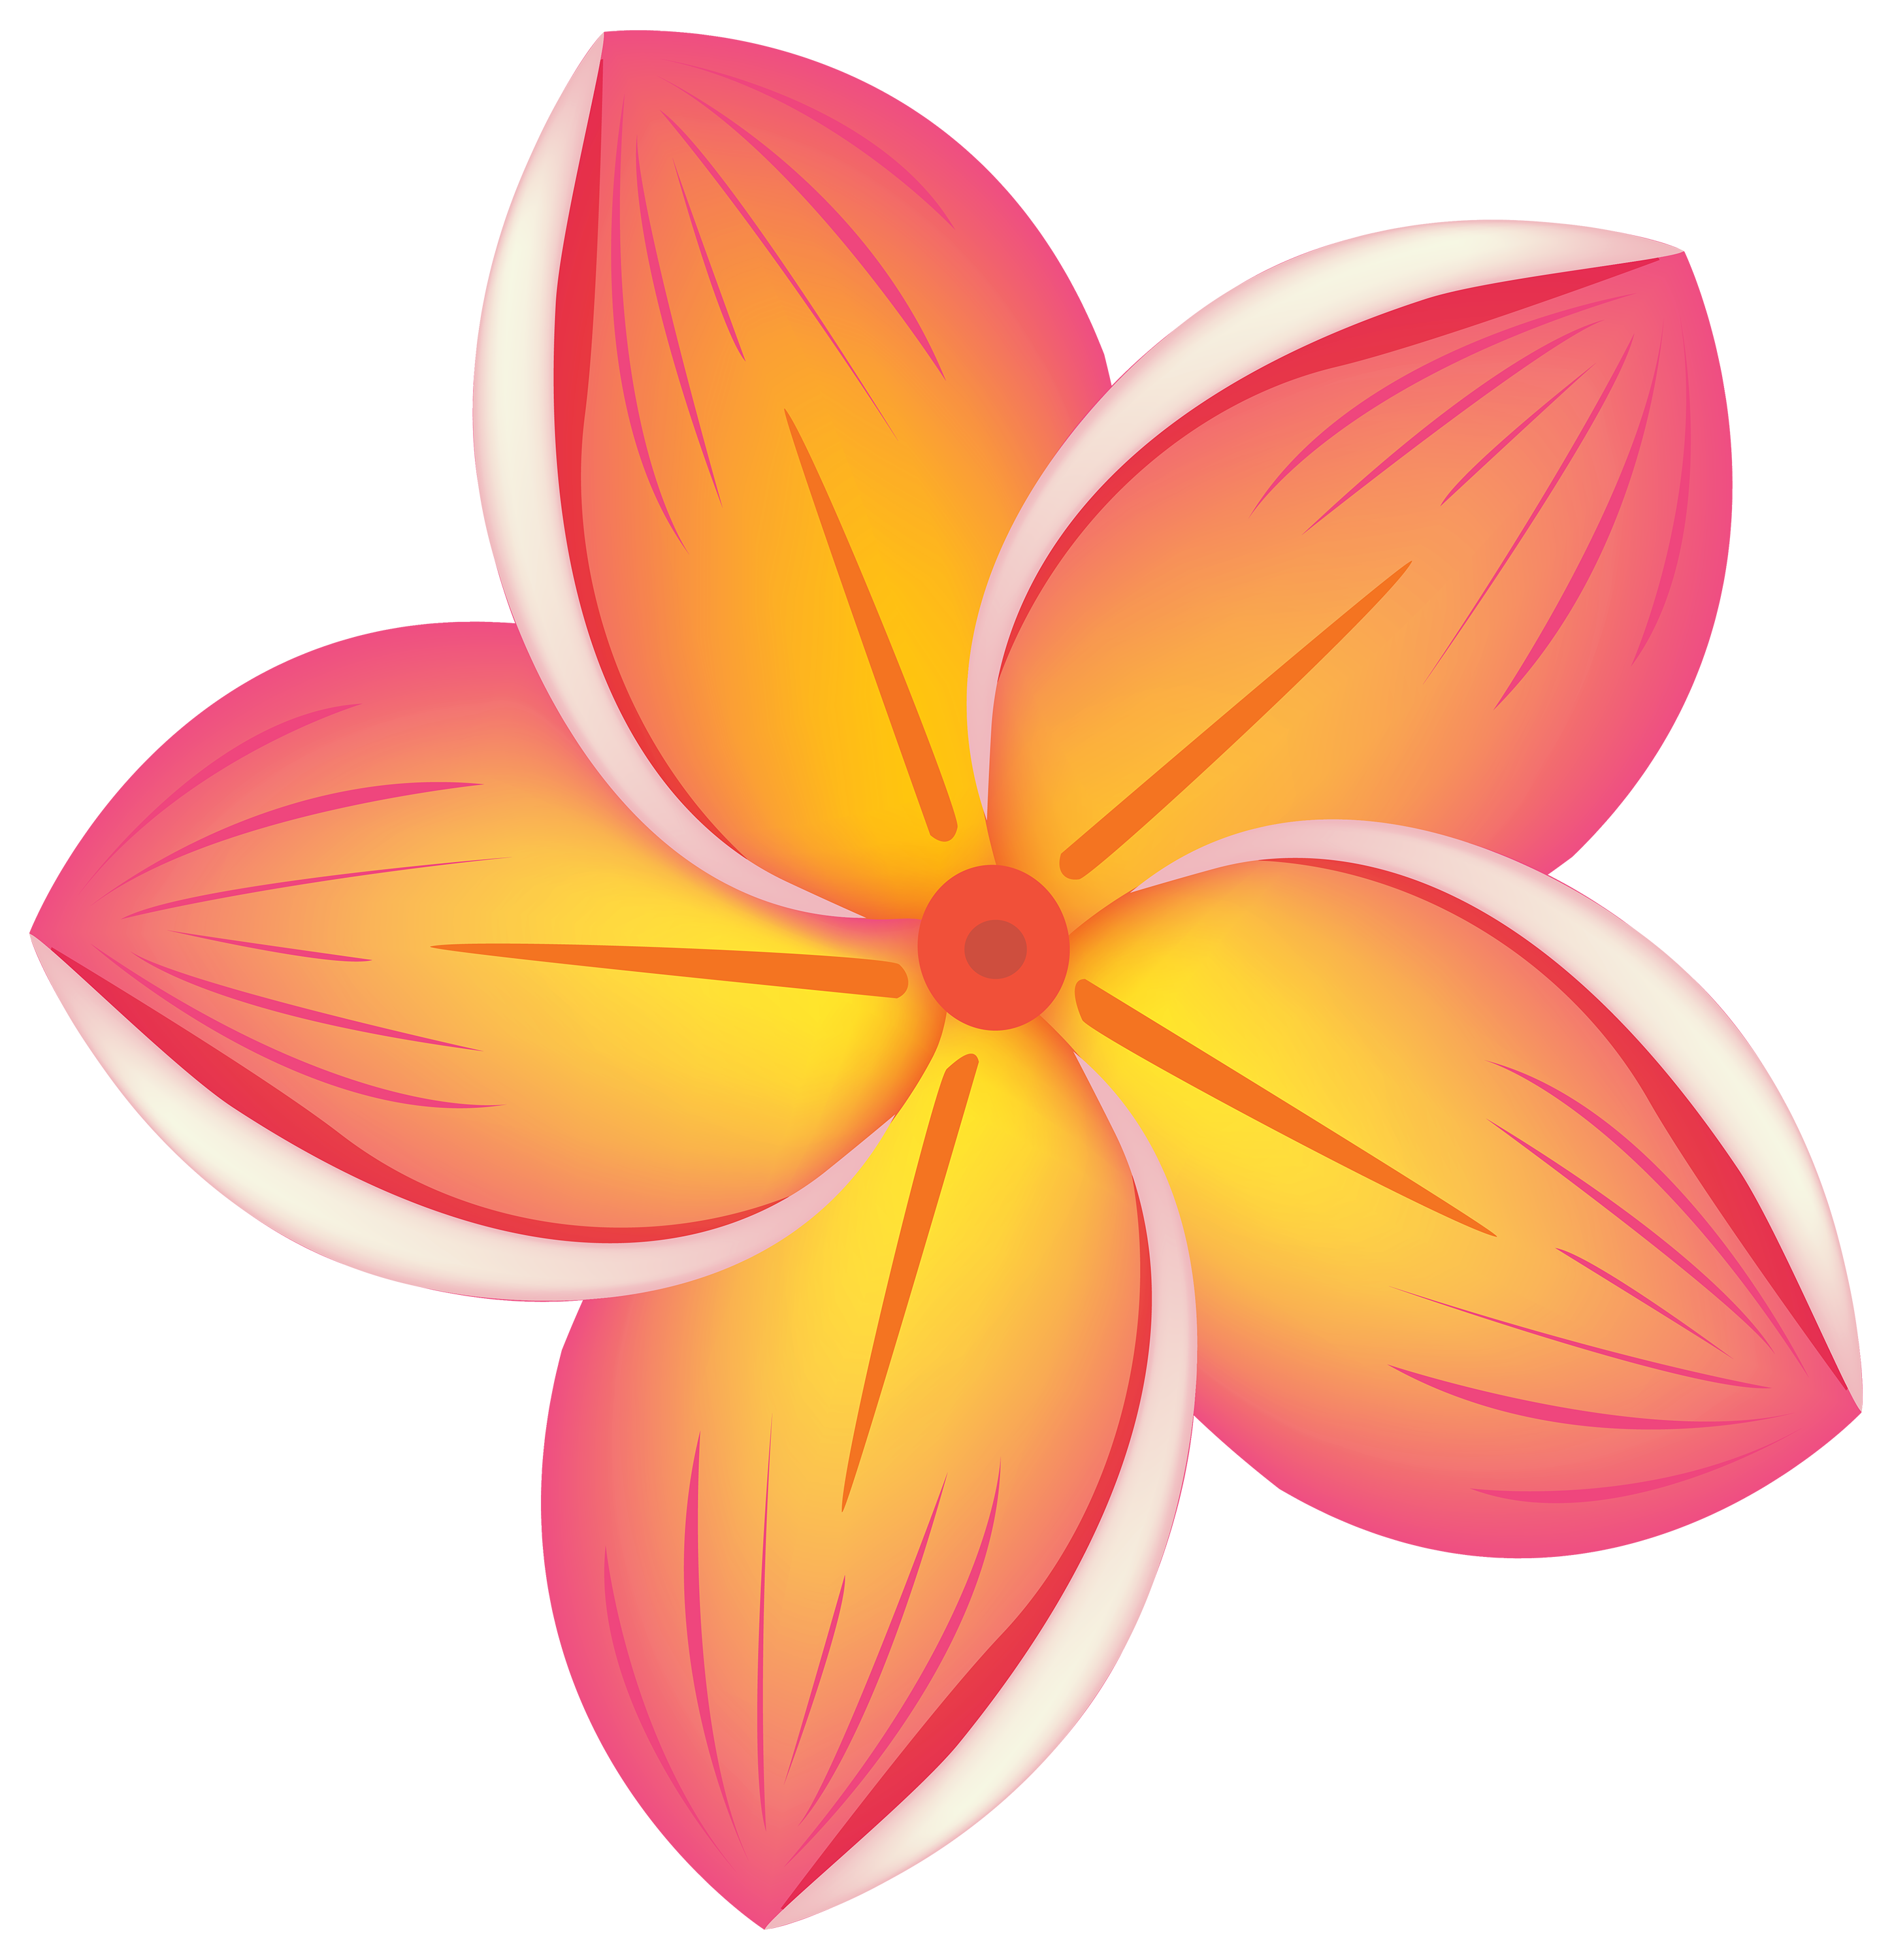 Moana flower png. Image result for flowers